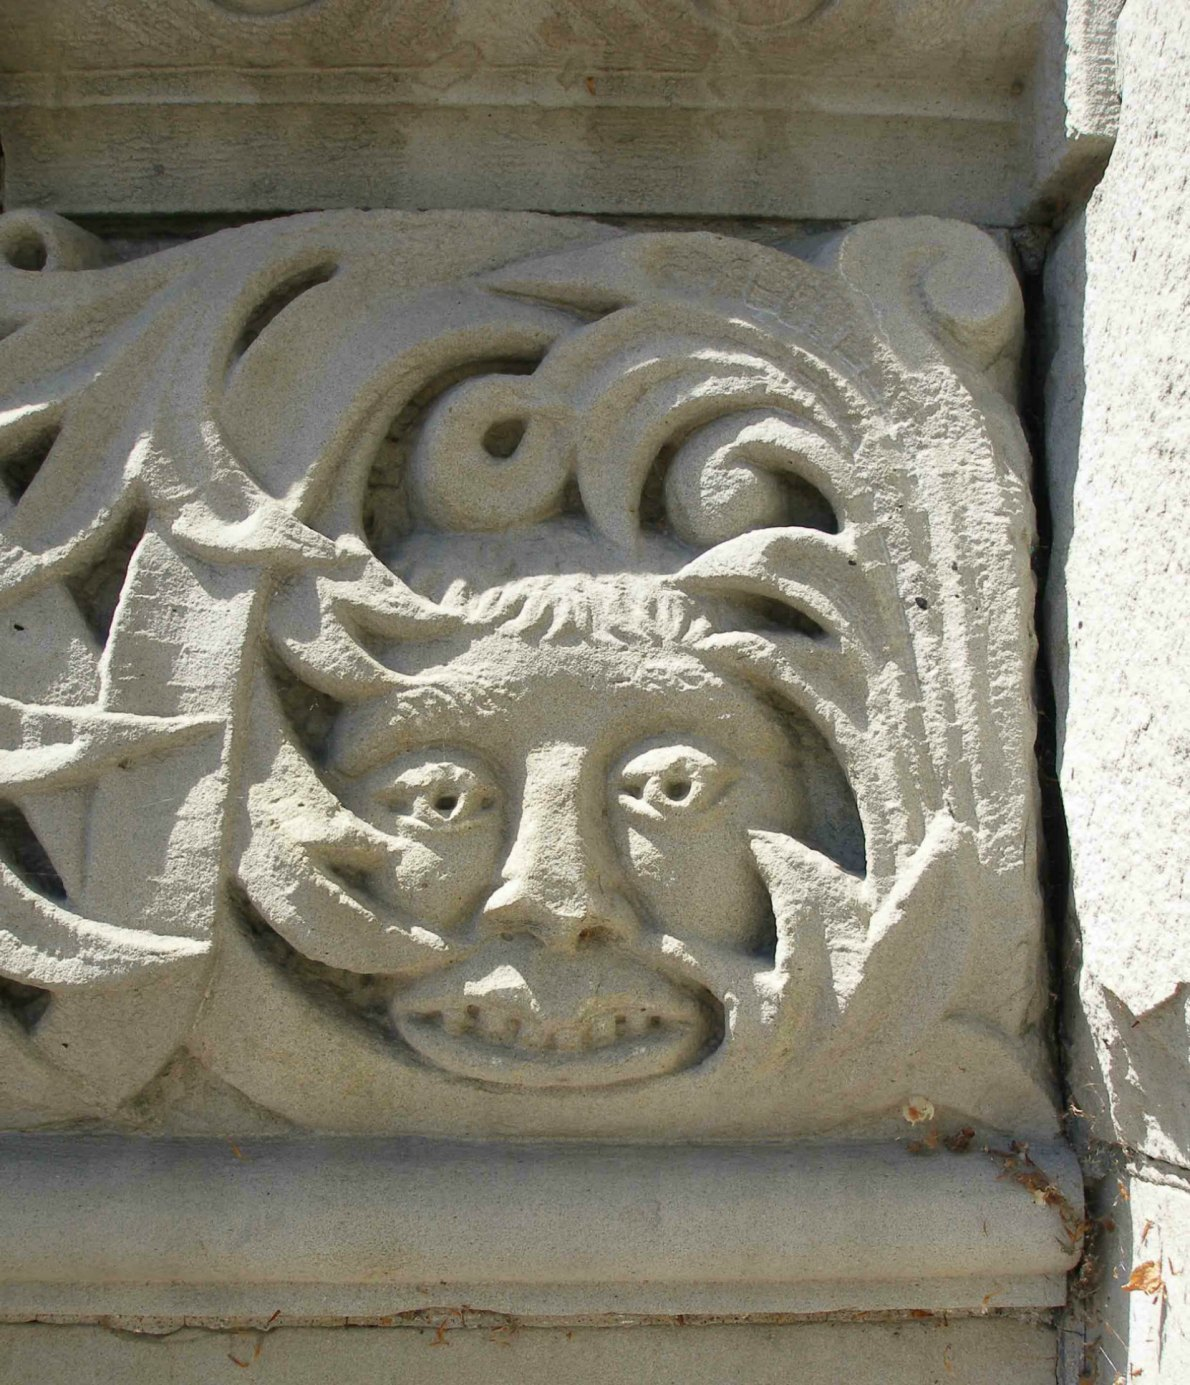 Exterior decorative detail on the stair railing of the Yates Street entrance of the former Carnegie Library, 794 Yates Street.